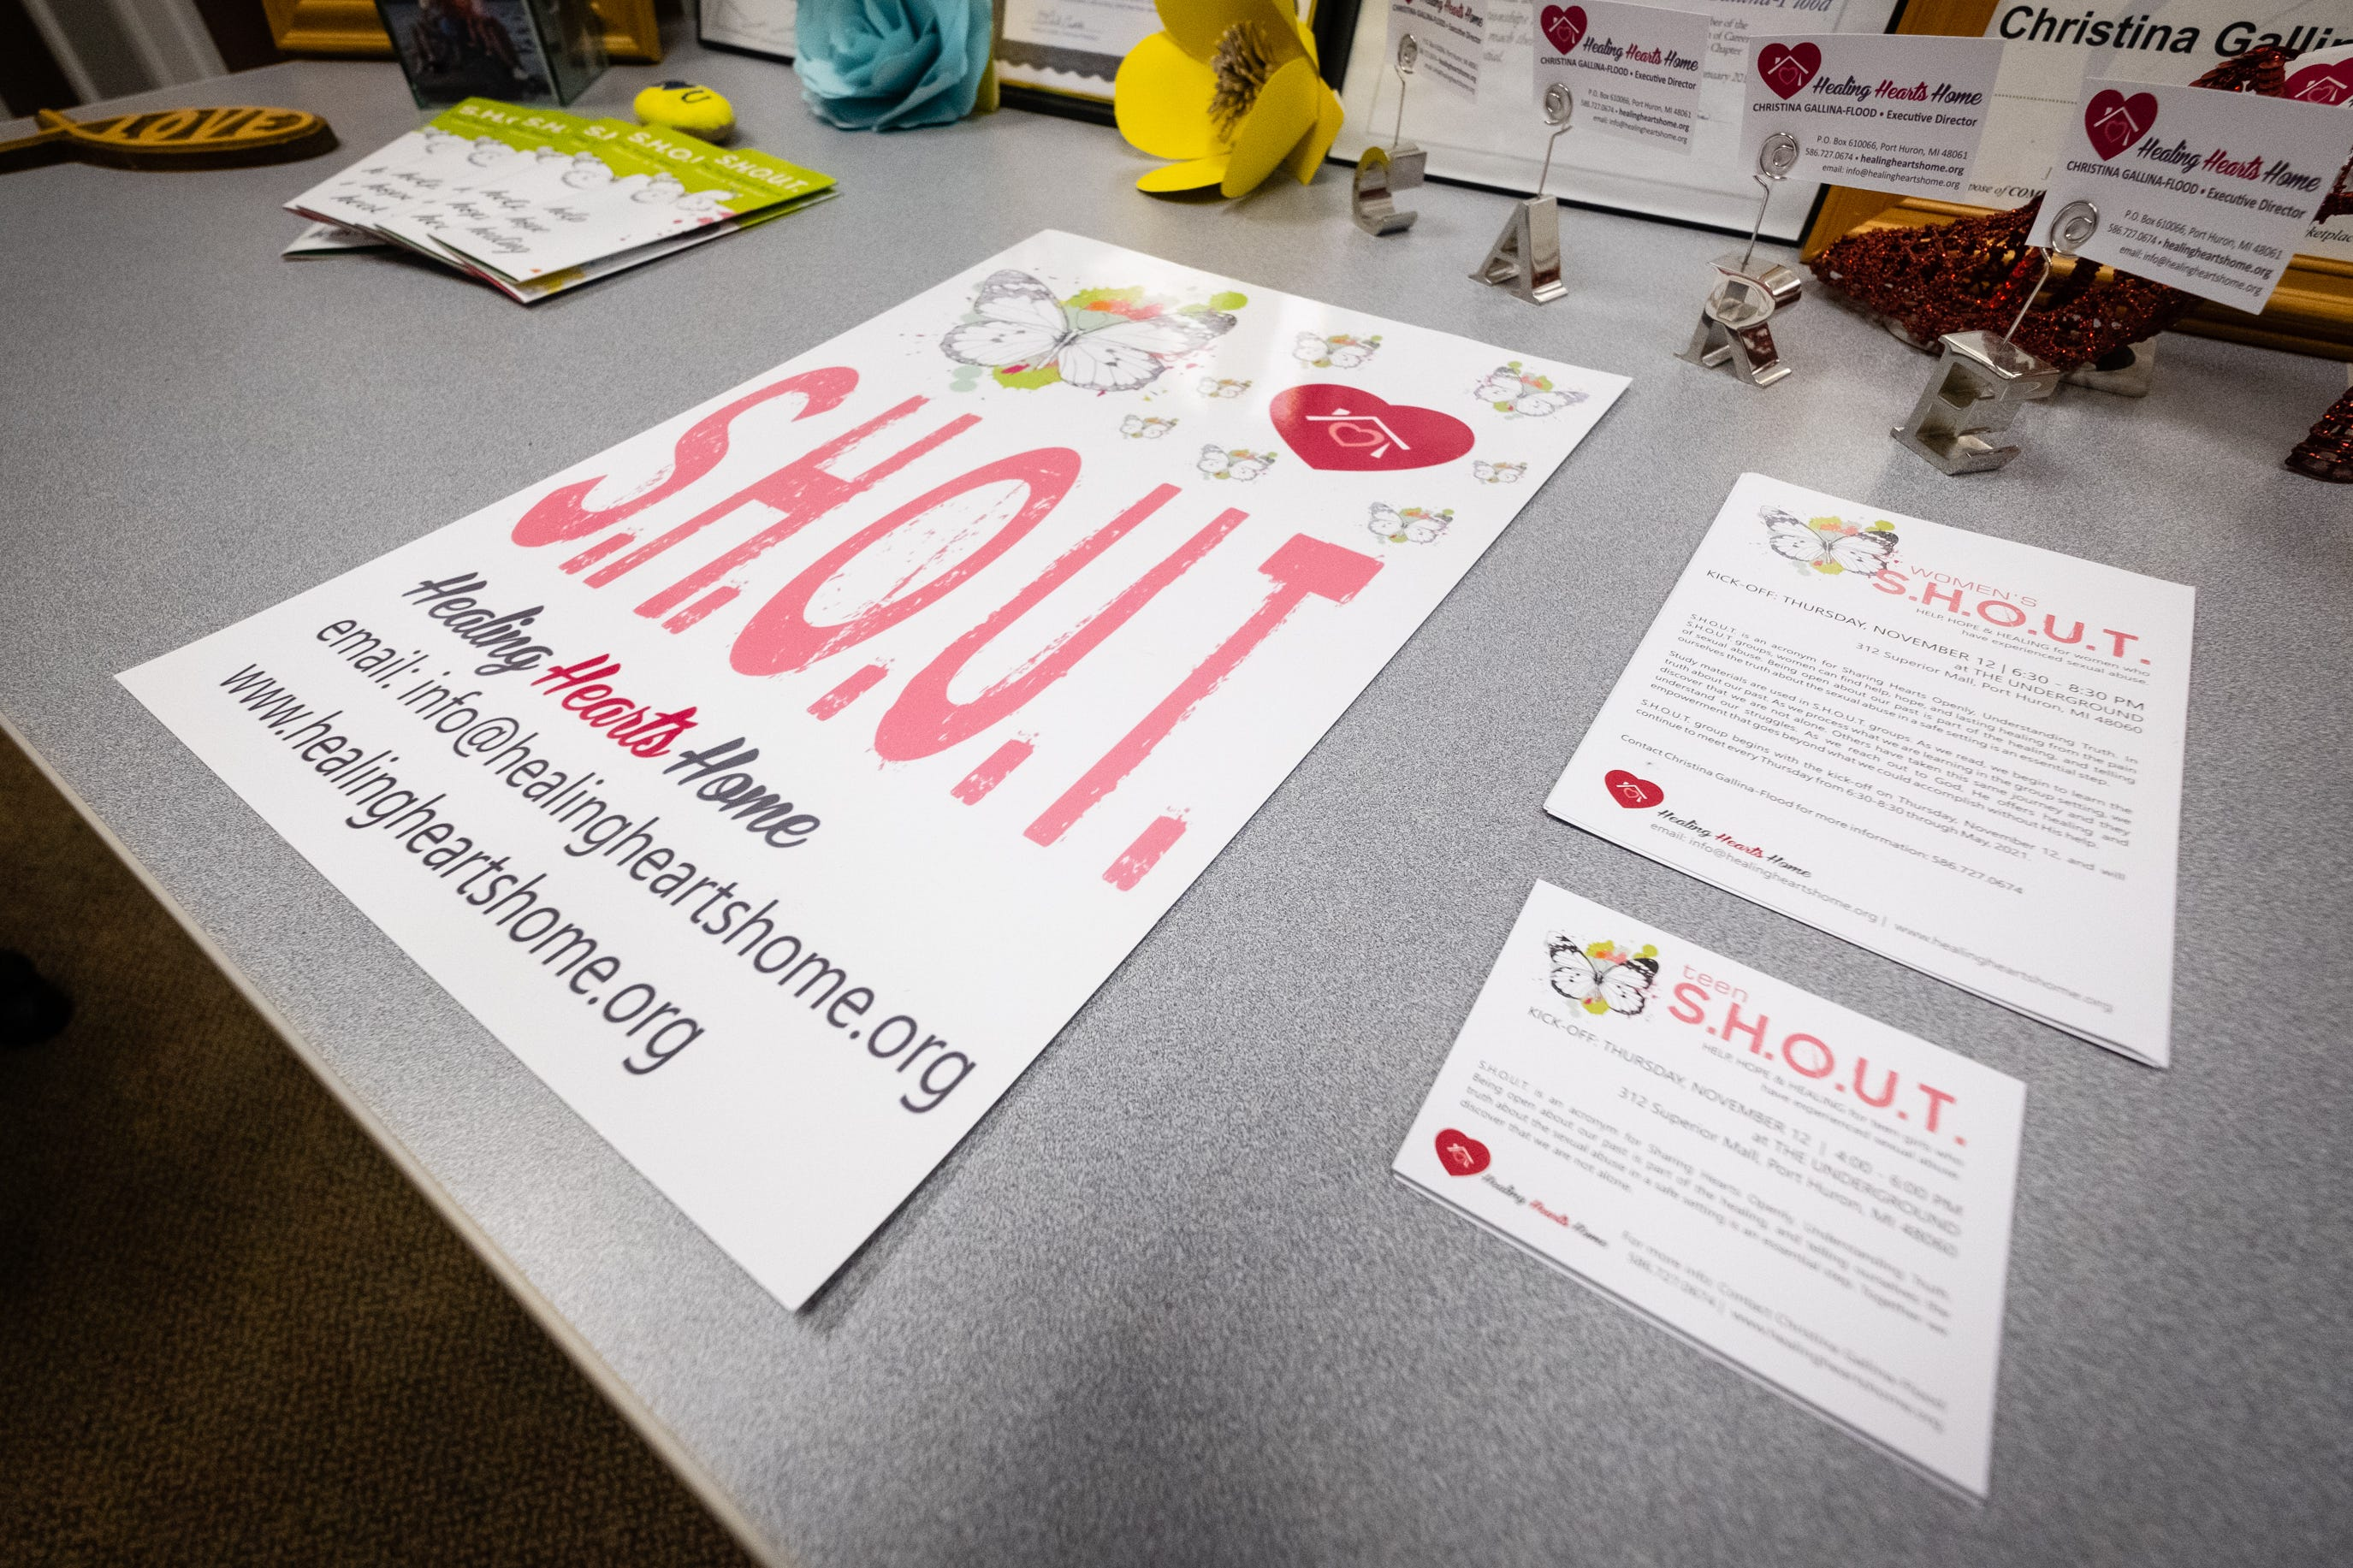 Healing Hearts Home Helps Teens Women Who Have Suffered Abuse